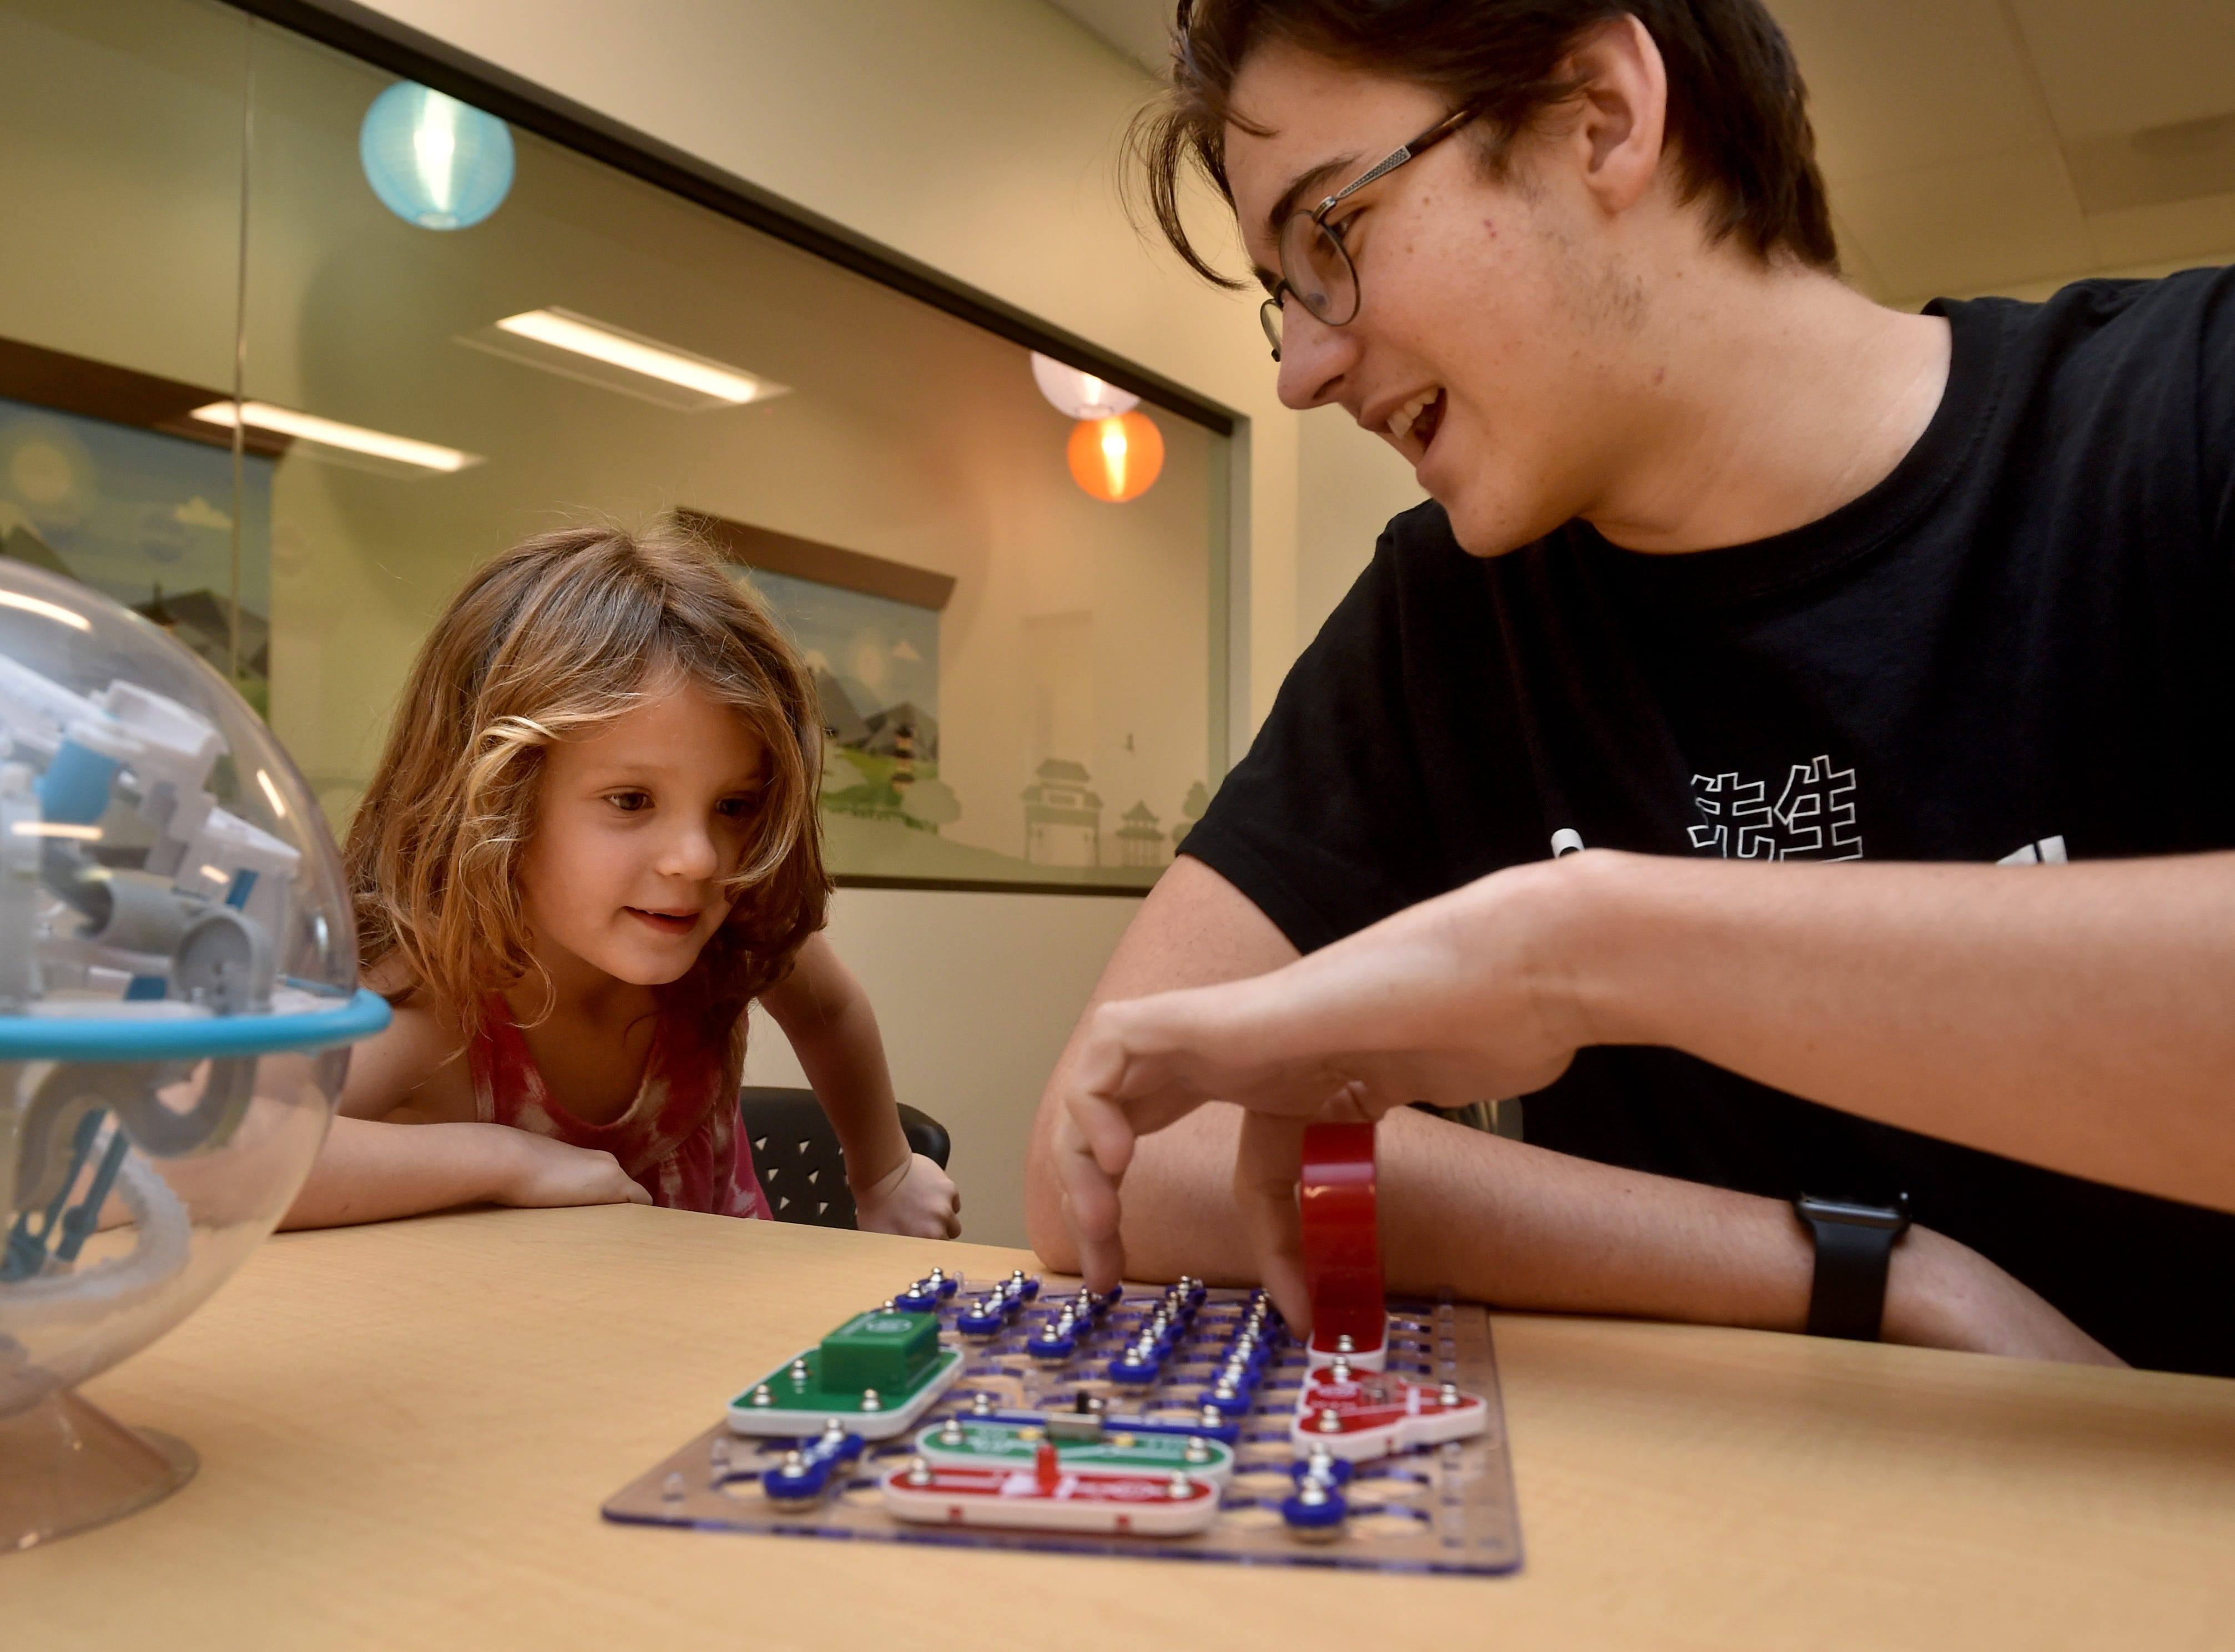 Devin Lucarelli, left, and sensei Zack Lown play with a circuit board at the new Code Ninjas dojo in Thousand Oaks. The facility is the first of its kind in Ventura County and the fifth franchise site in California.